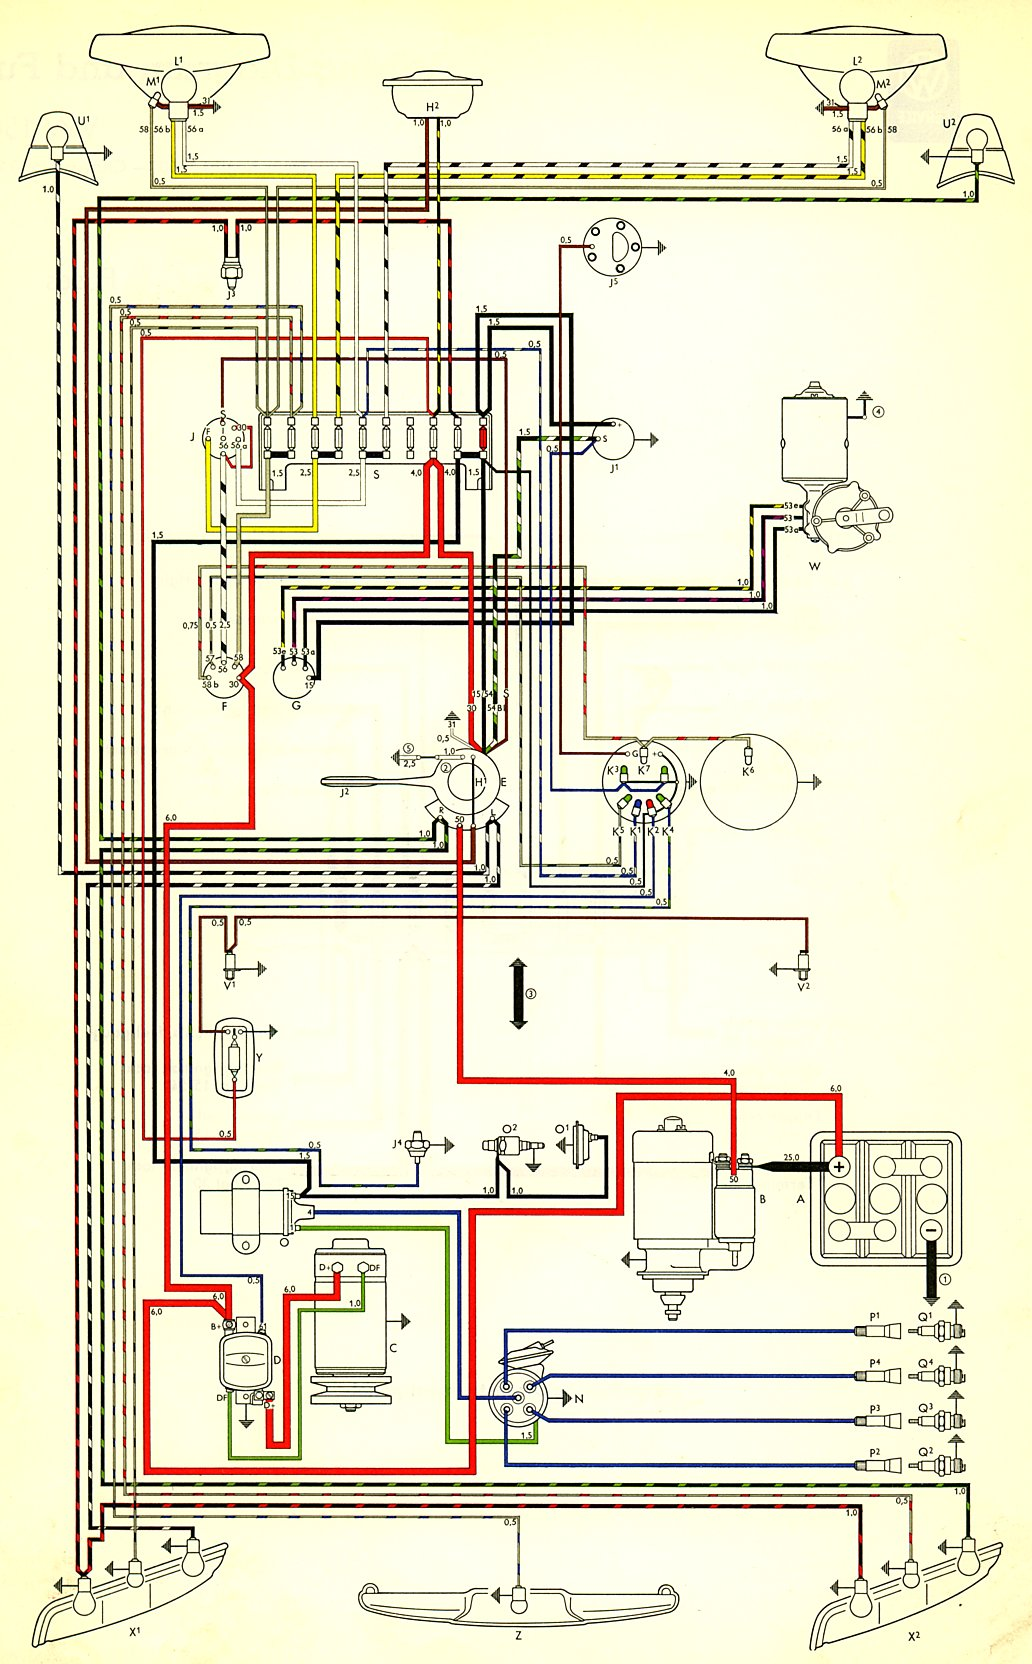 thesamba com type 3 wiring diagrams rh thesamba com e type series 3 wiring diagram volkswagen type 3 wiring diagram